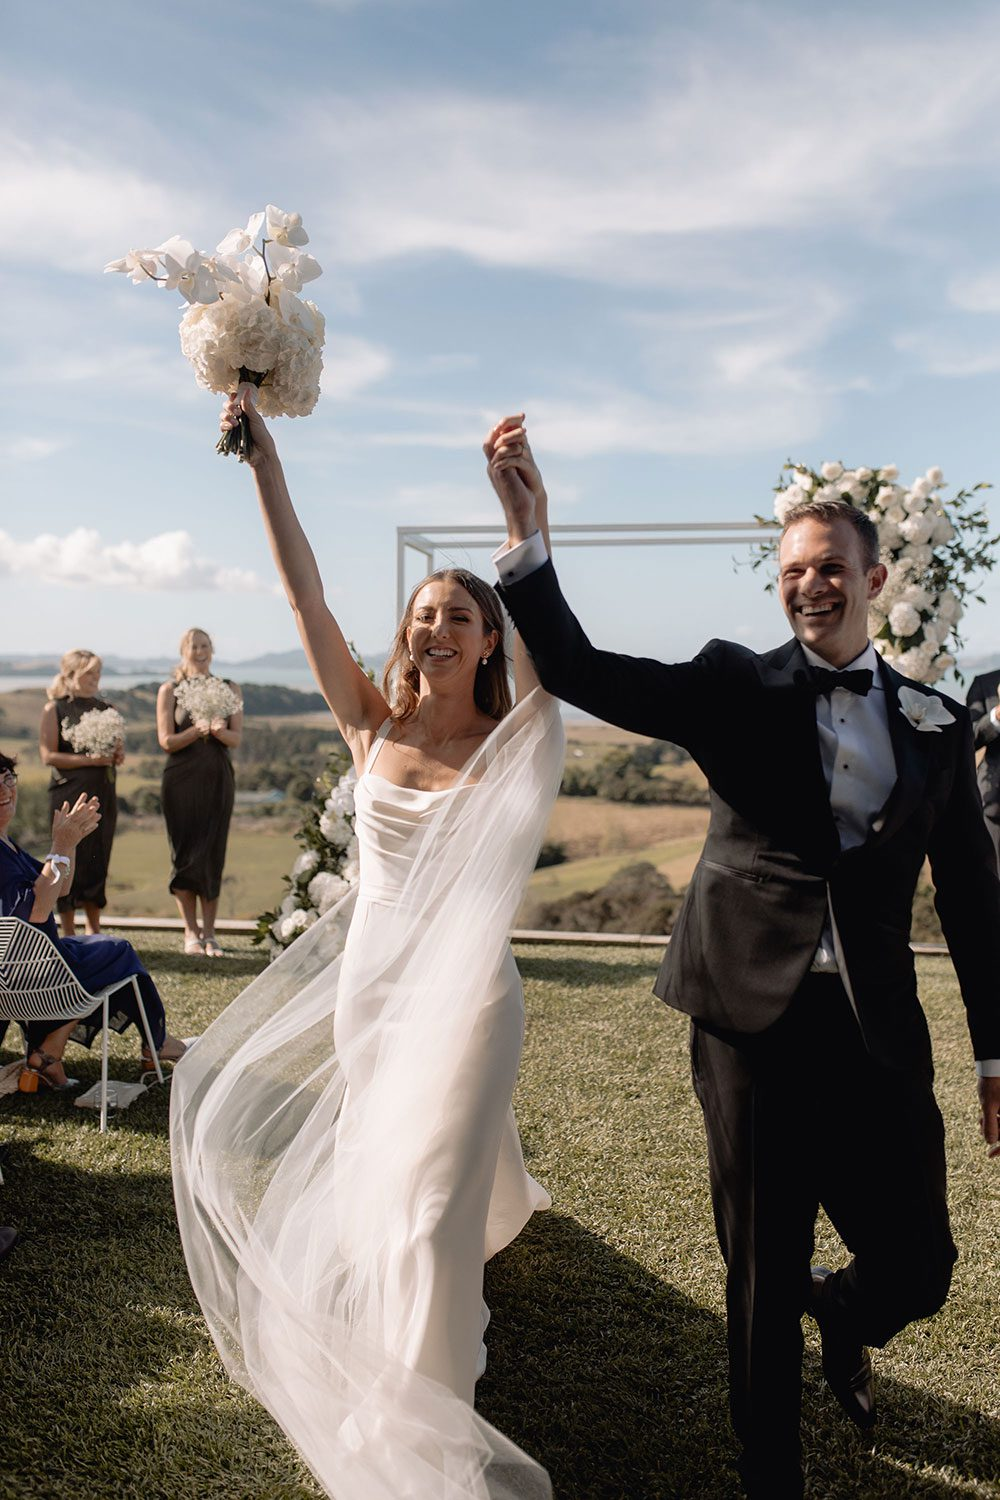 Bride wearing NZ Bespoke Bridal Gown made of silk faile with cowl bodice and detachable overskirt by Vinka Designs - just married